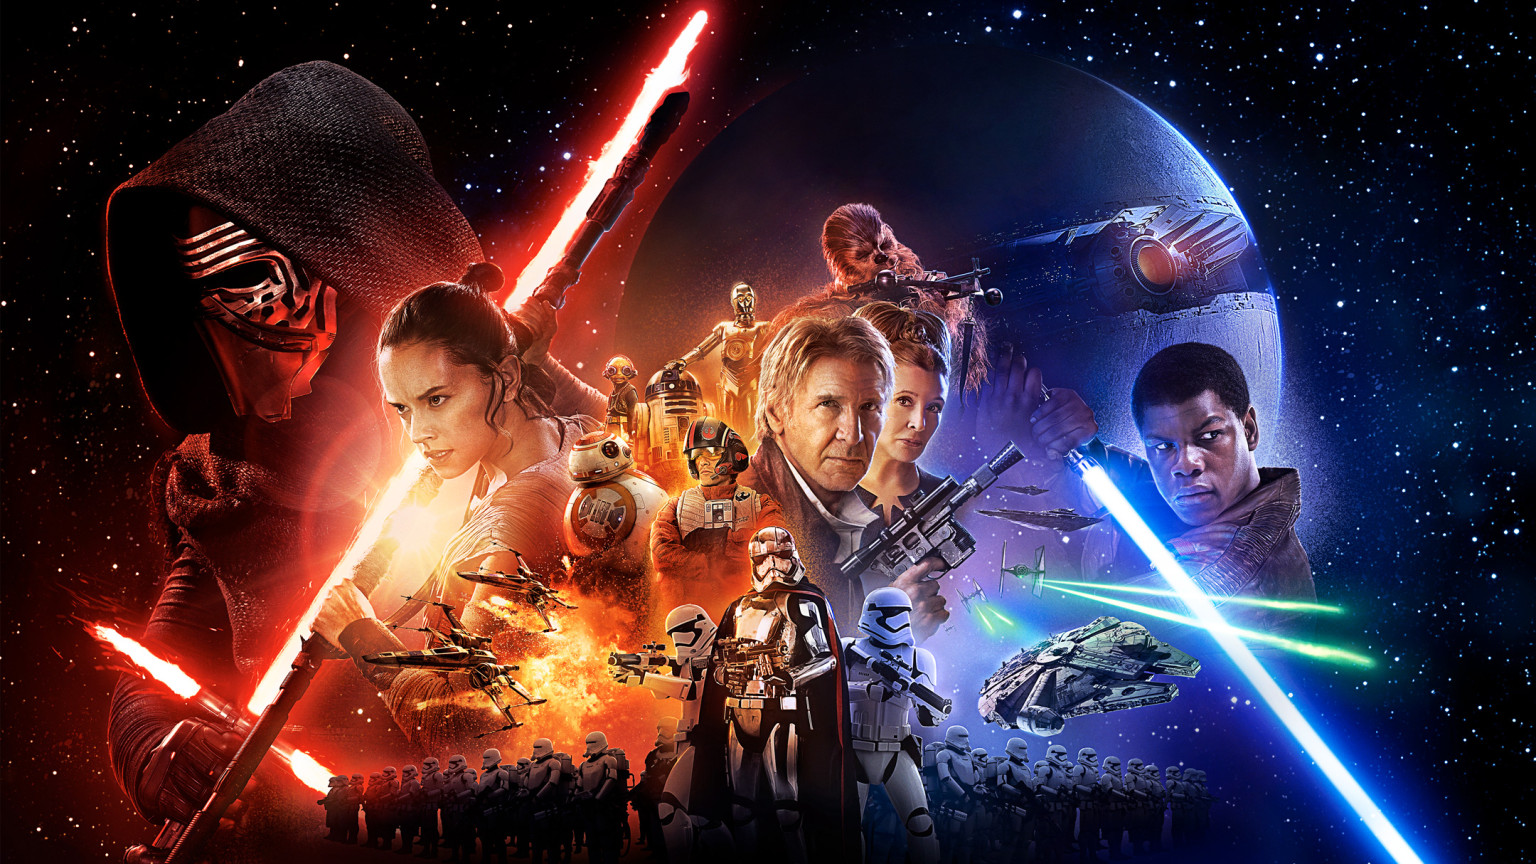 Free Summer Movies in the Park: Star Wars - the Force Awakens at Tierrasanta Park